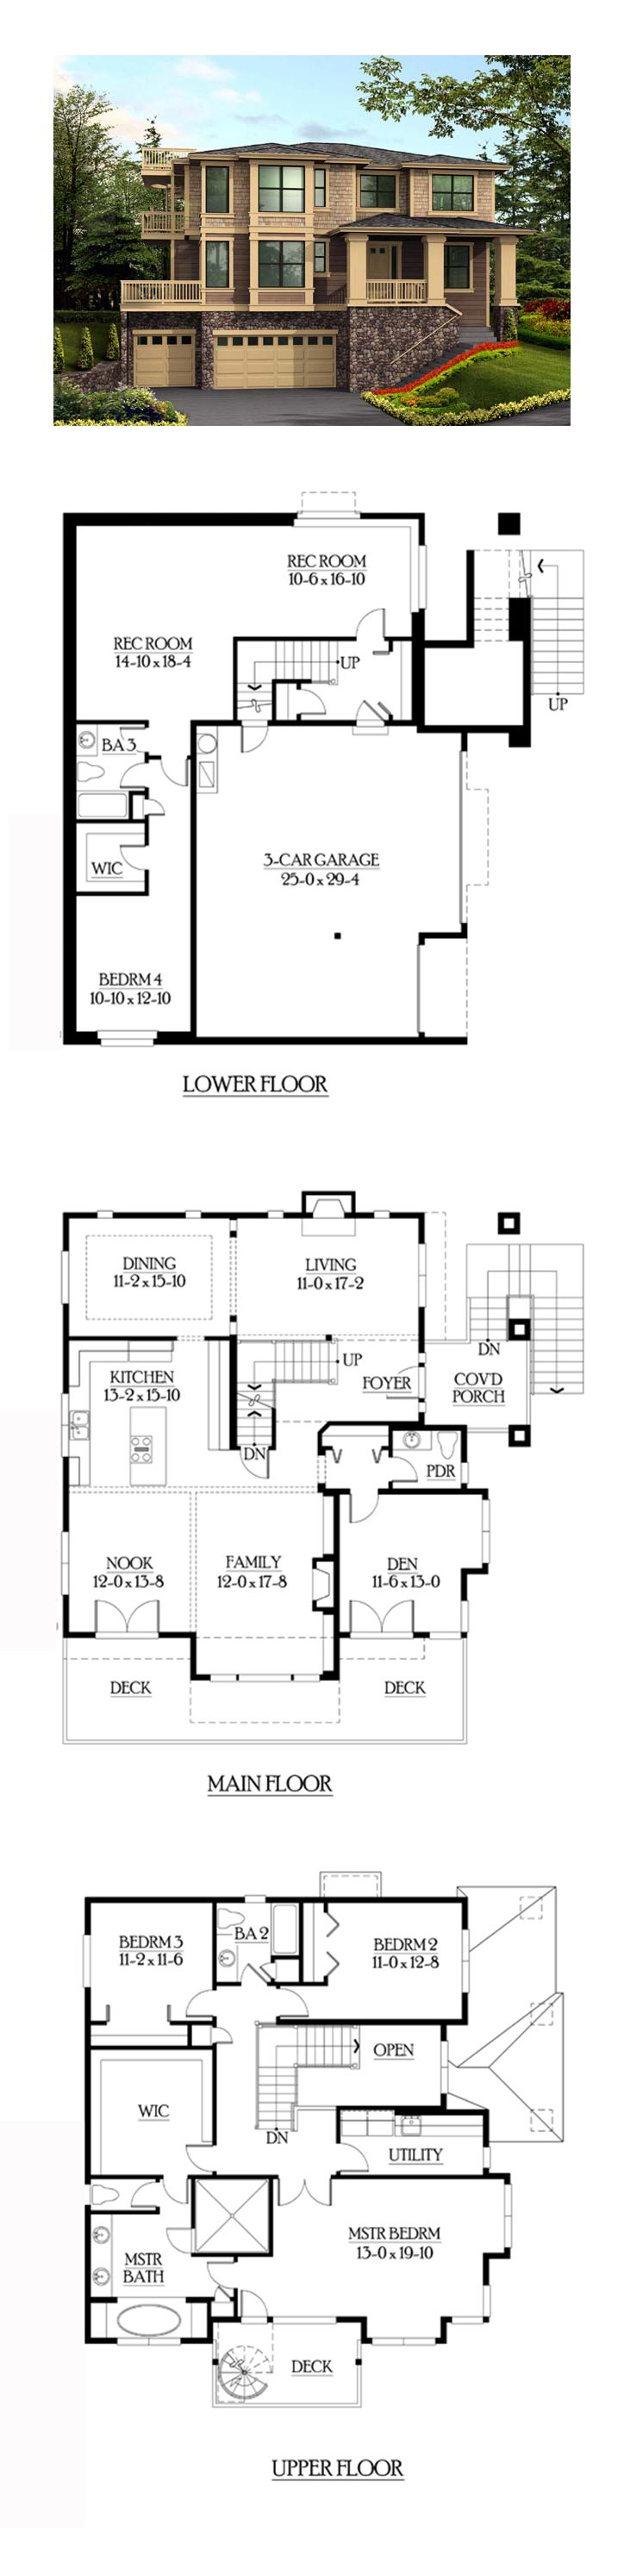 Best 25 basement house plans ideas on pinterest house House plans with basement